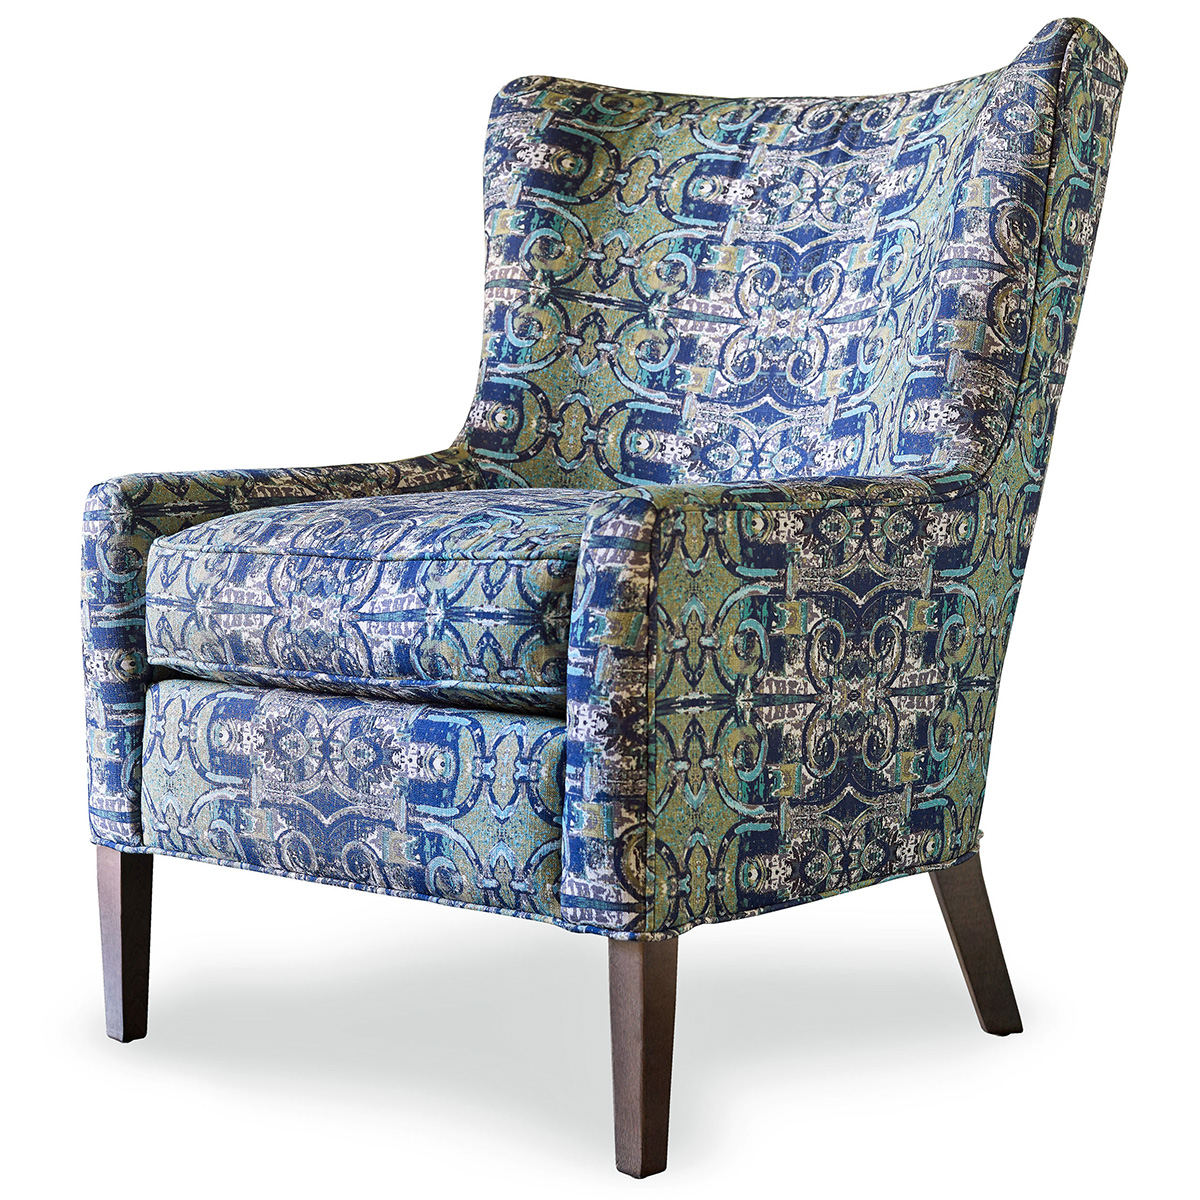 patterned chair blue